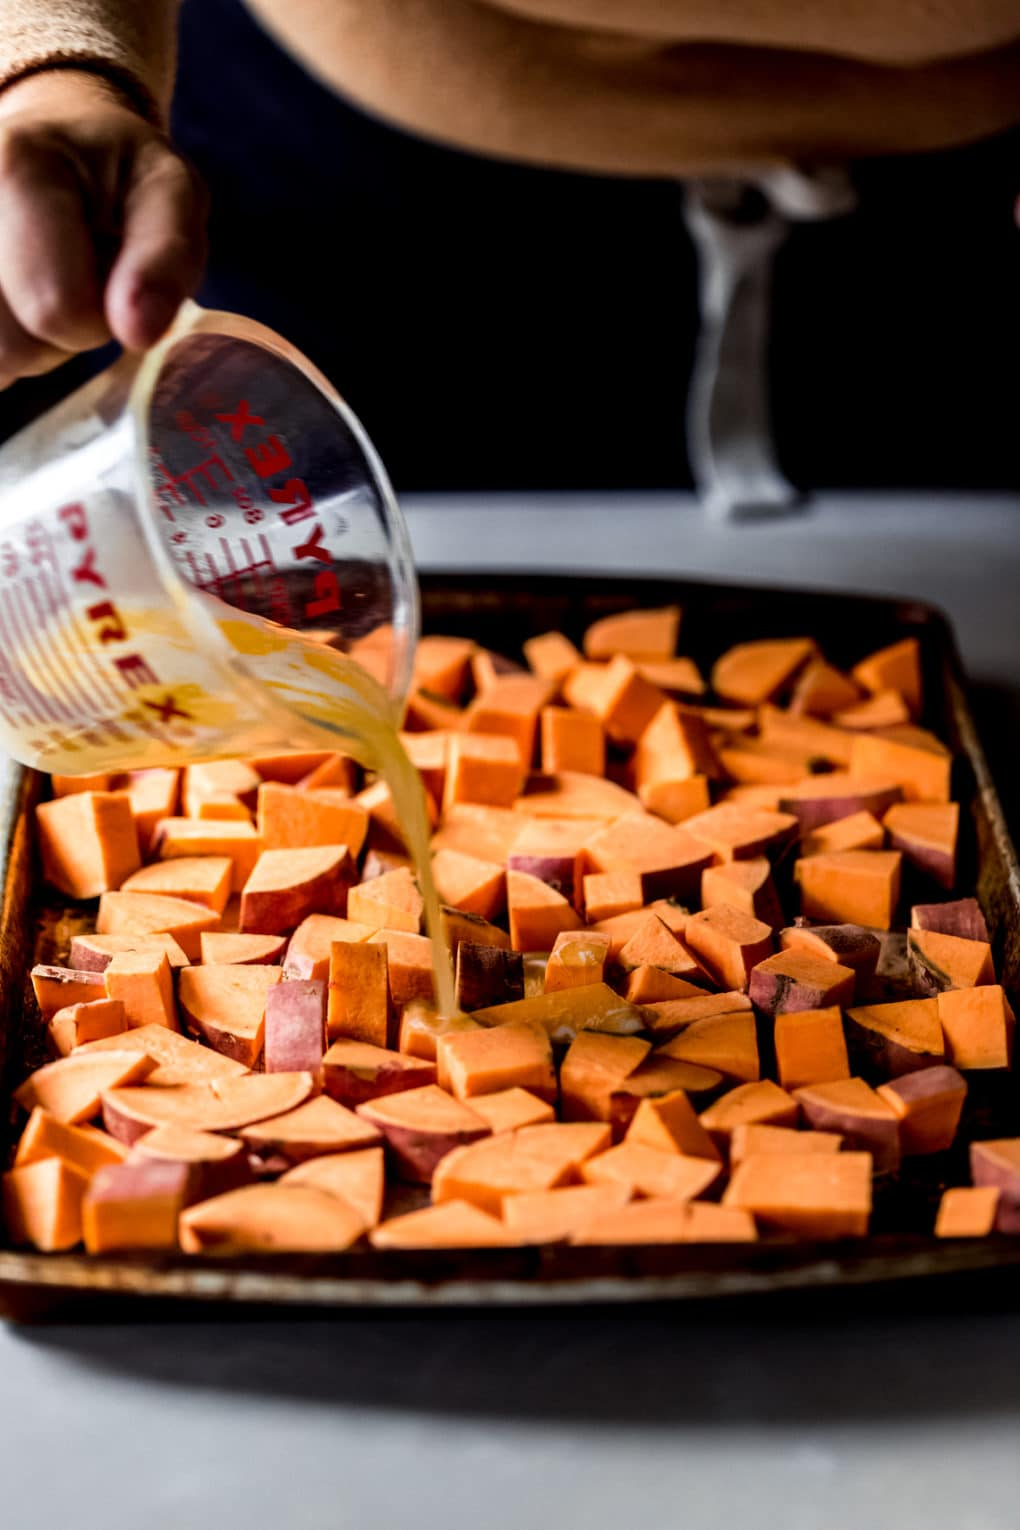 a woman pouring melted butter over a tray of diced sweet potatoes